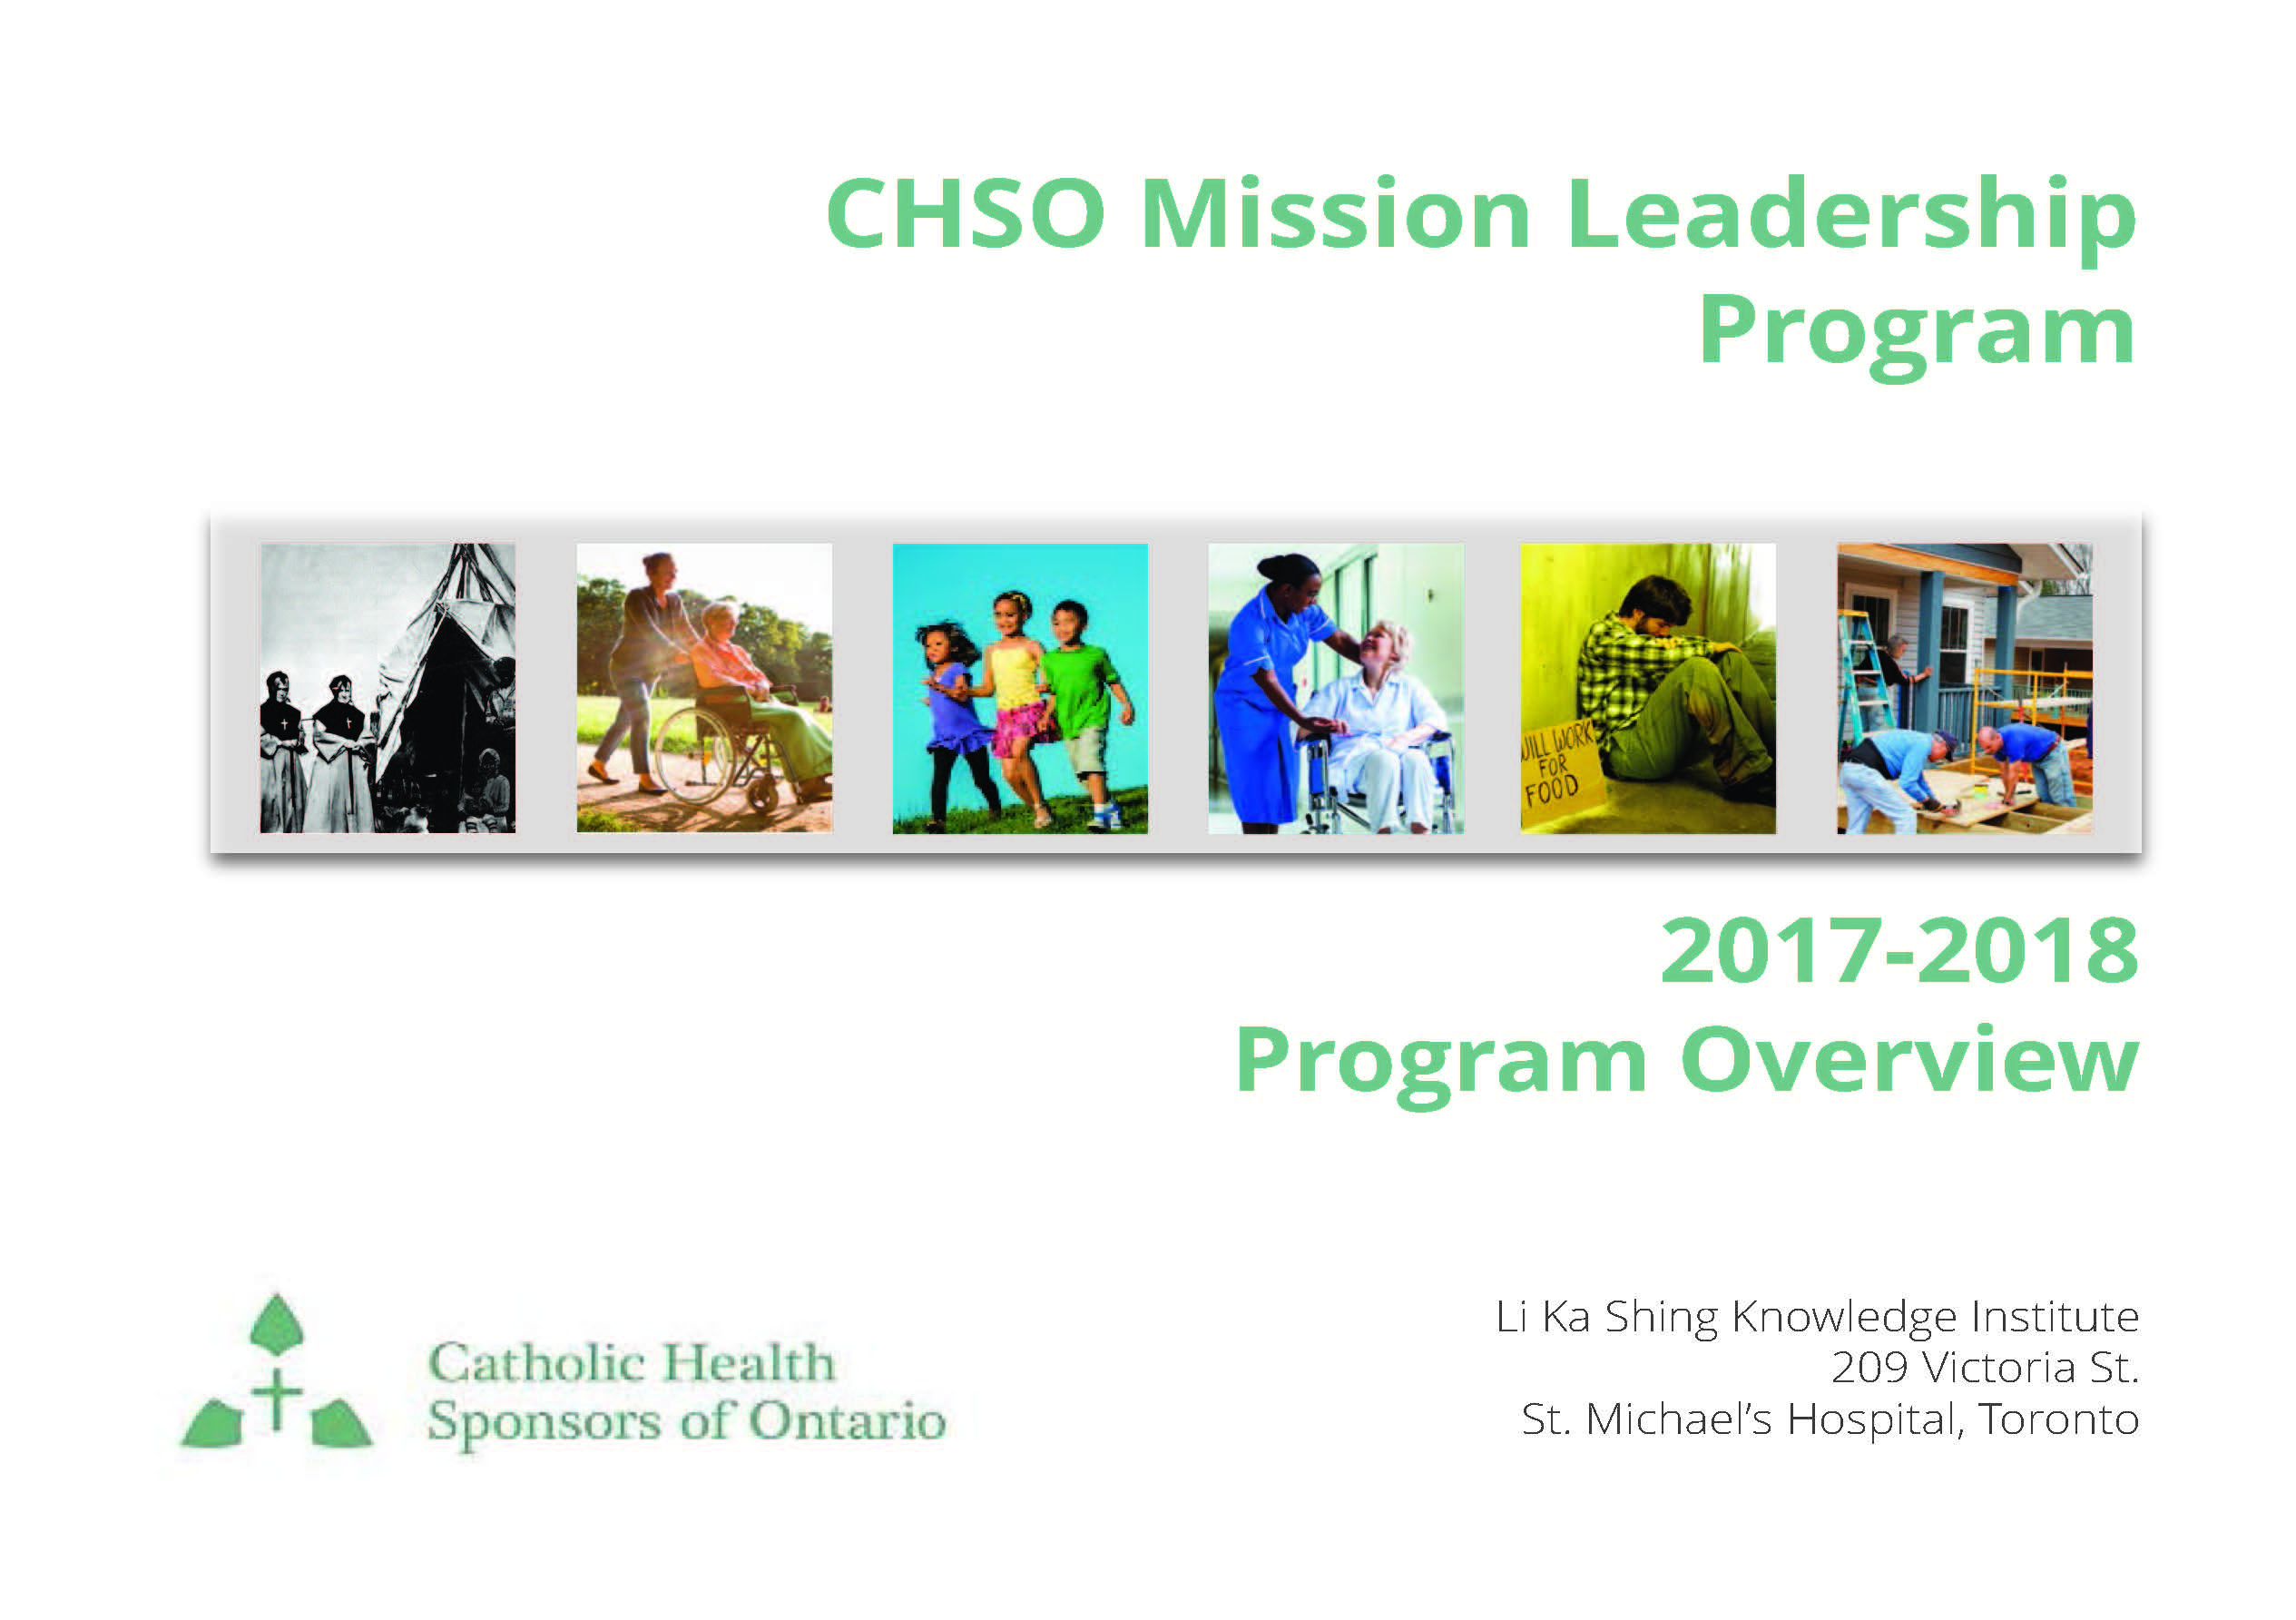 CHSO Mission Leadership Program